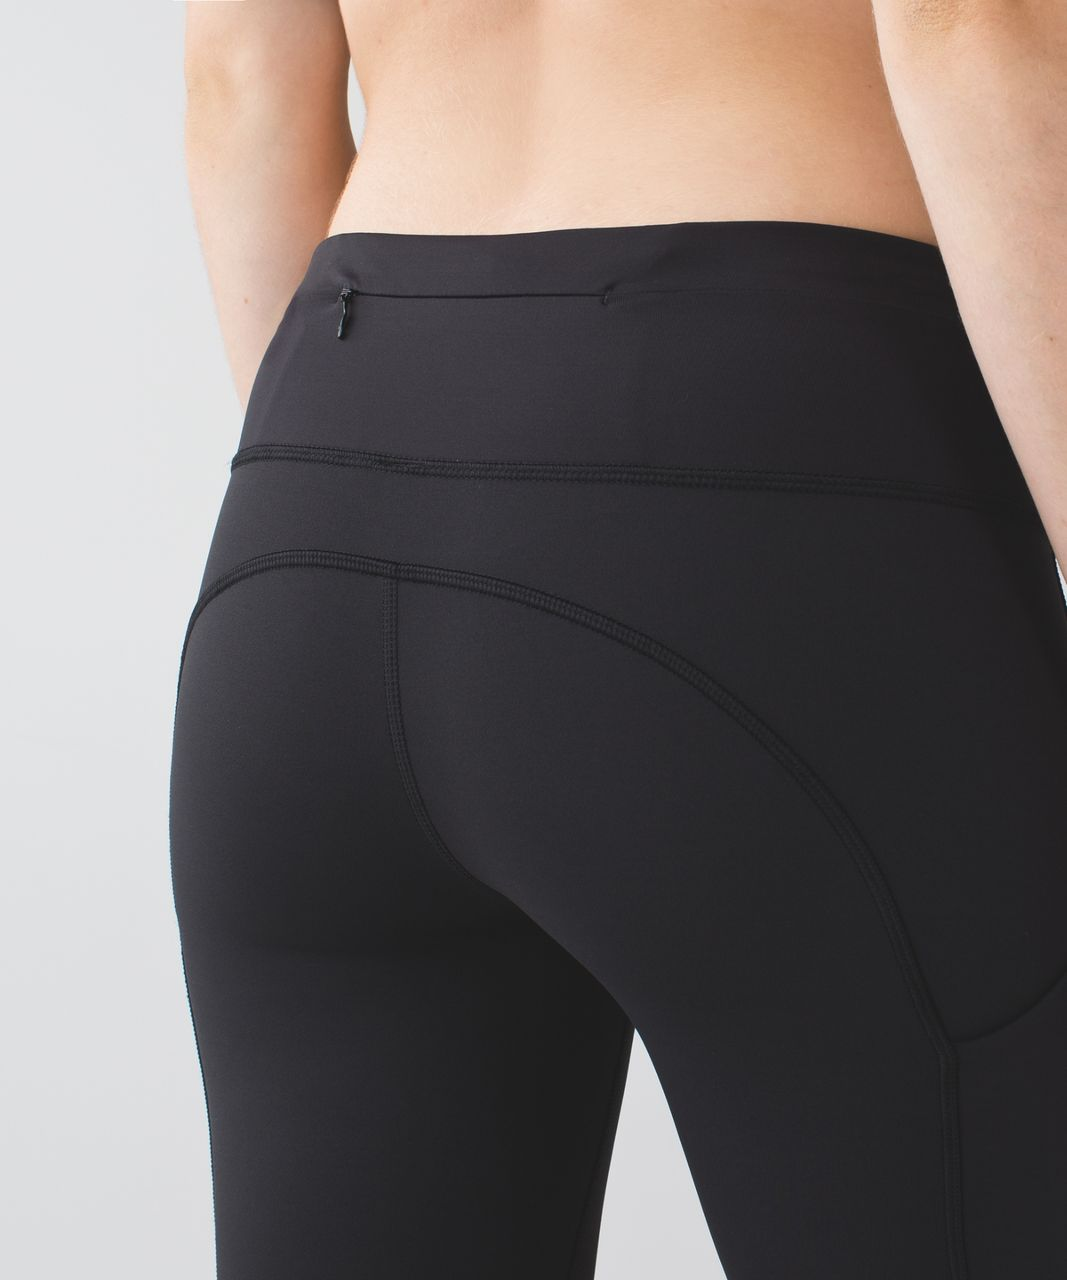 Lululemon Speed Tight III (Mesh) - Black